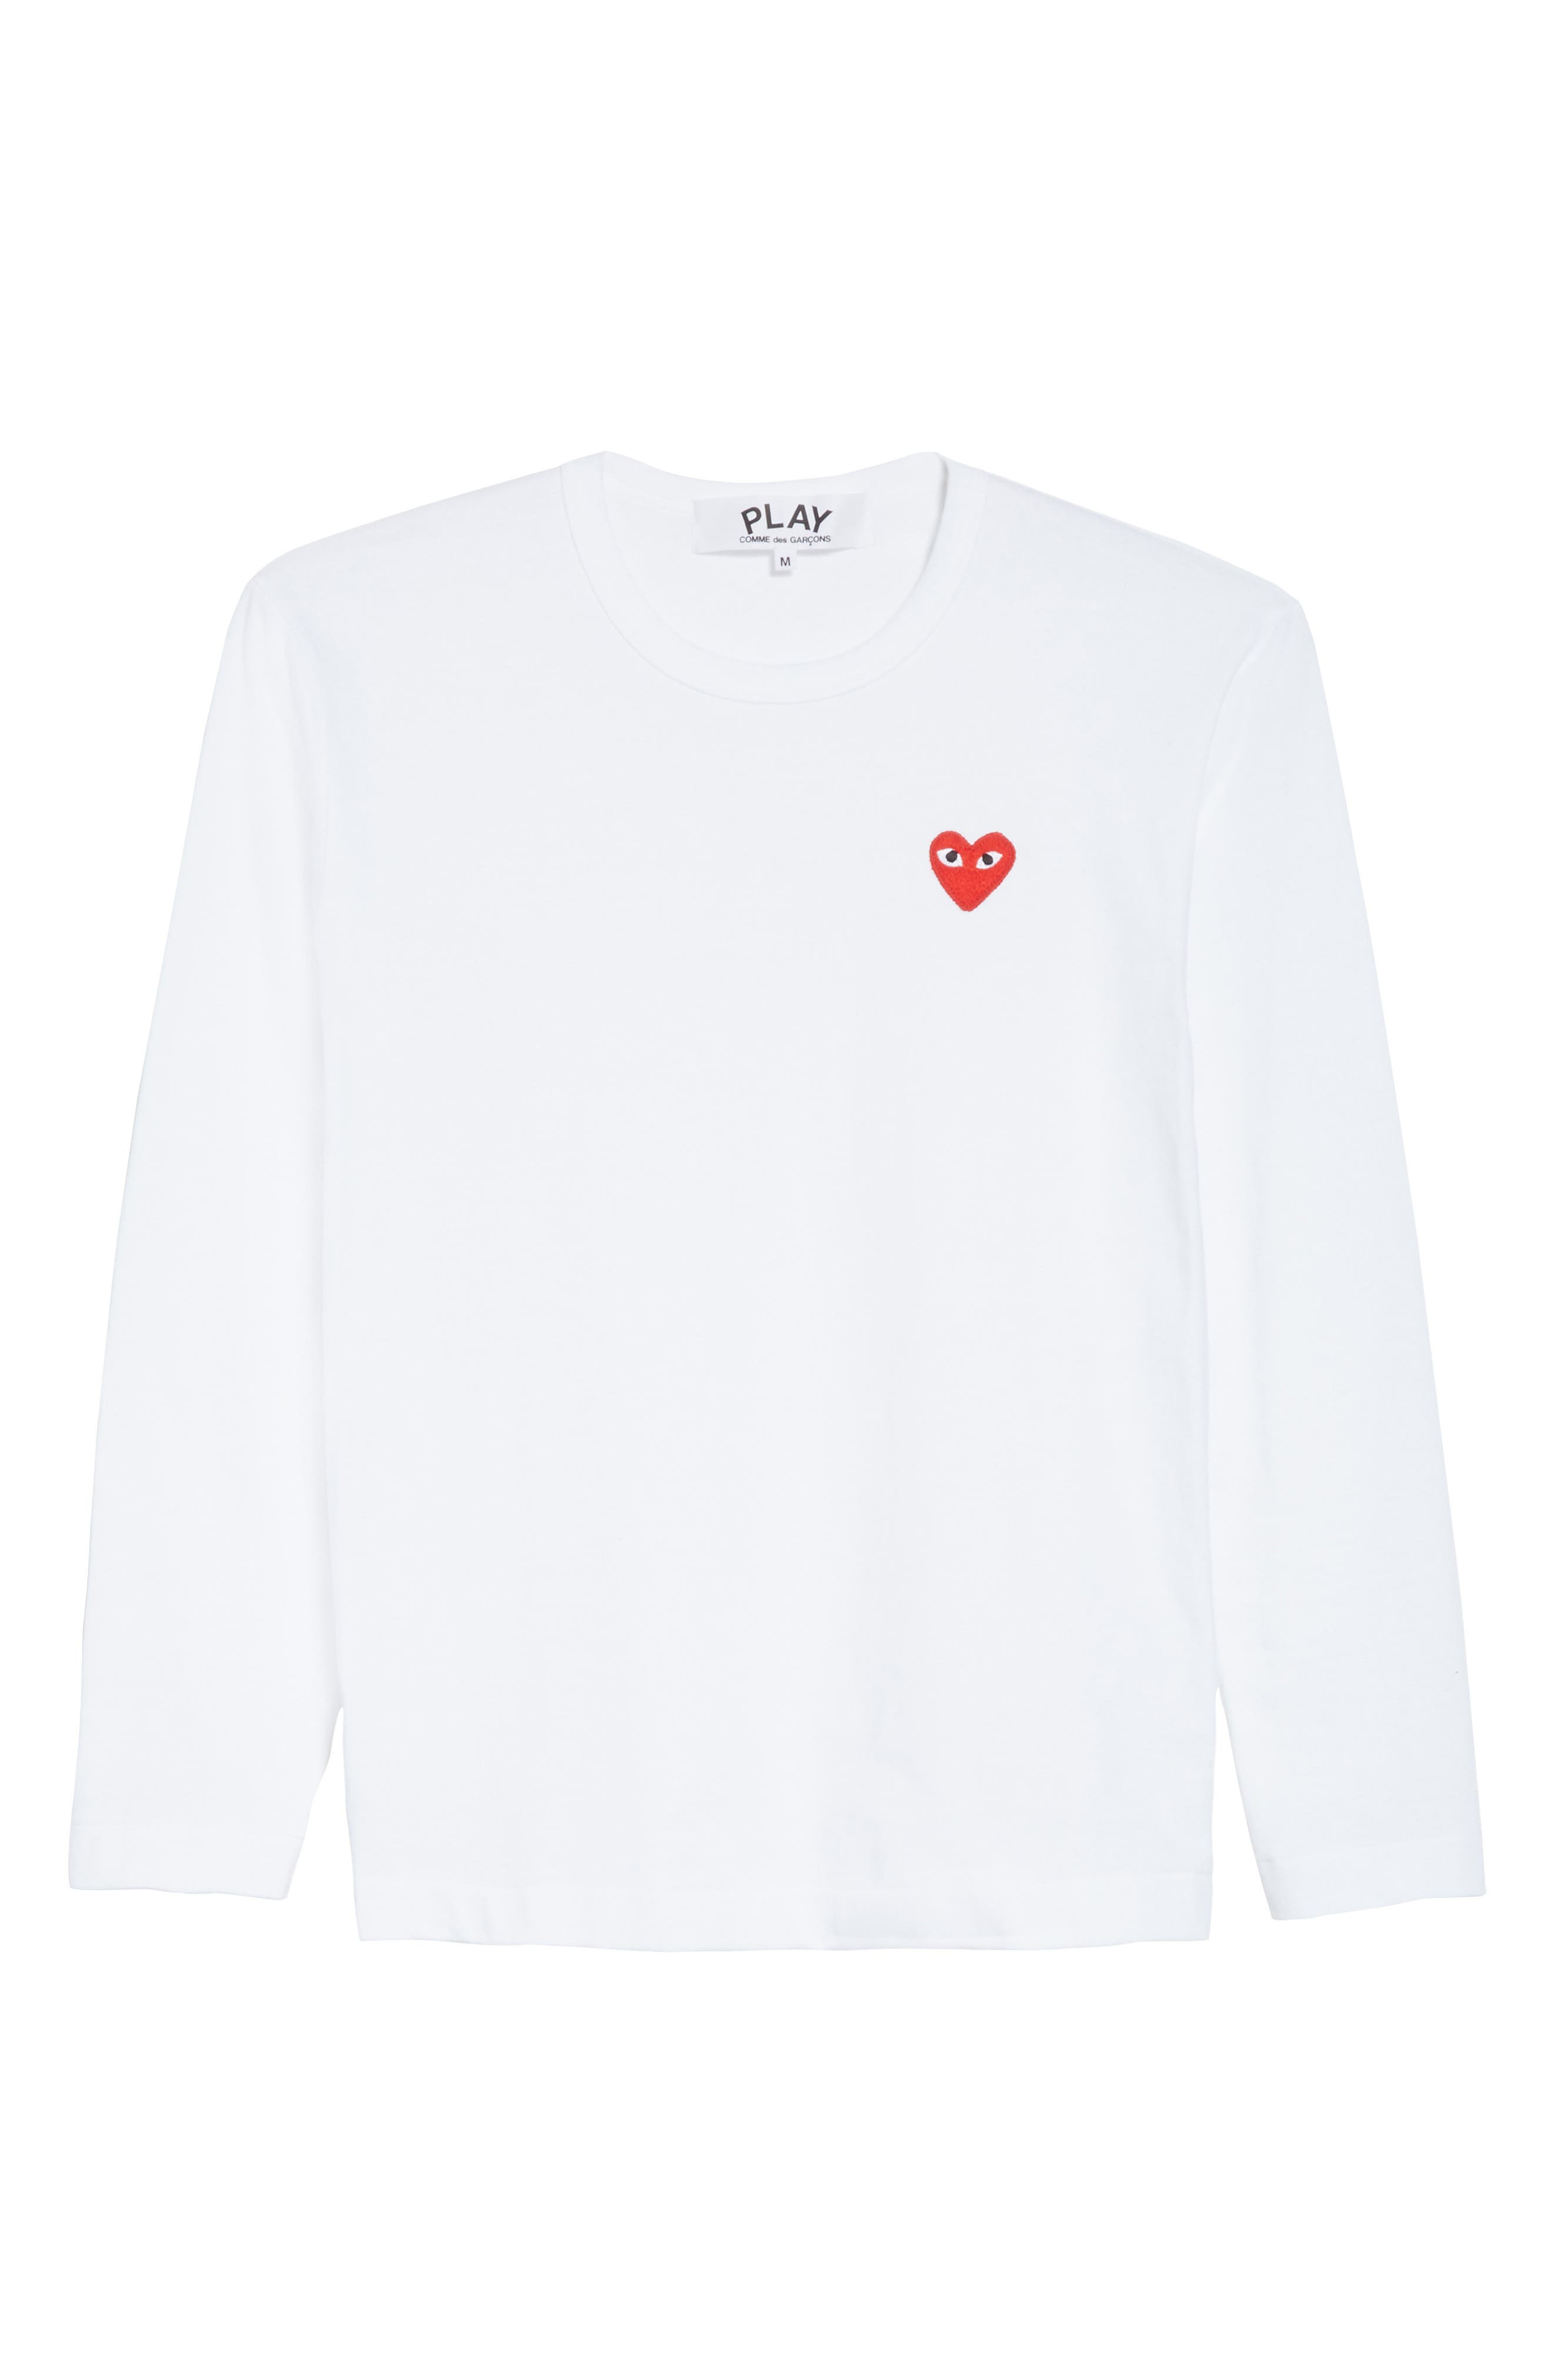 PLAY Long Sleeve T-Shirt,                             Alternate thumbnail 6, color,                             White